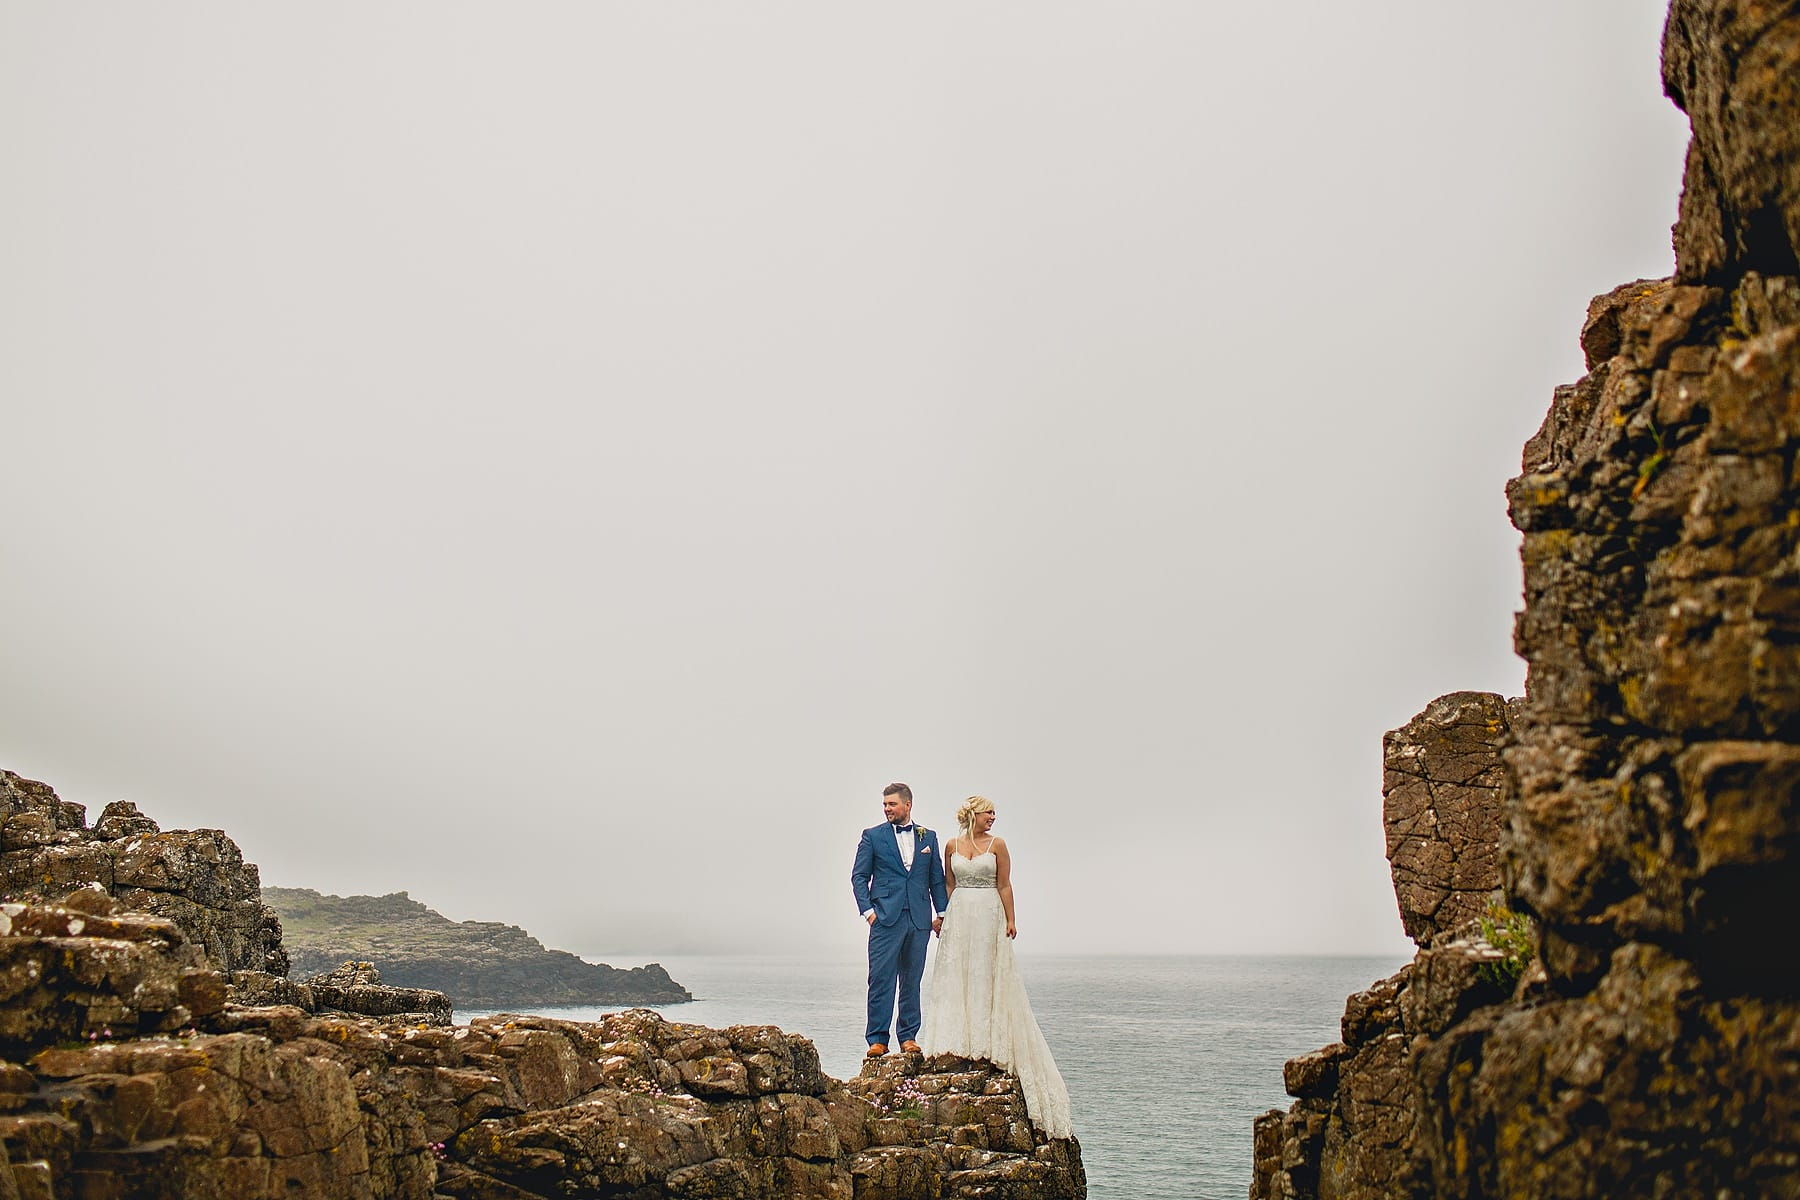 Bride Groom North Coast Cliff Wedding Photographer,